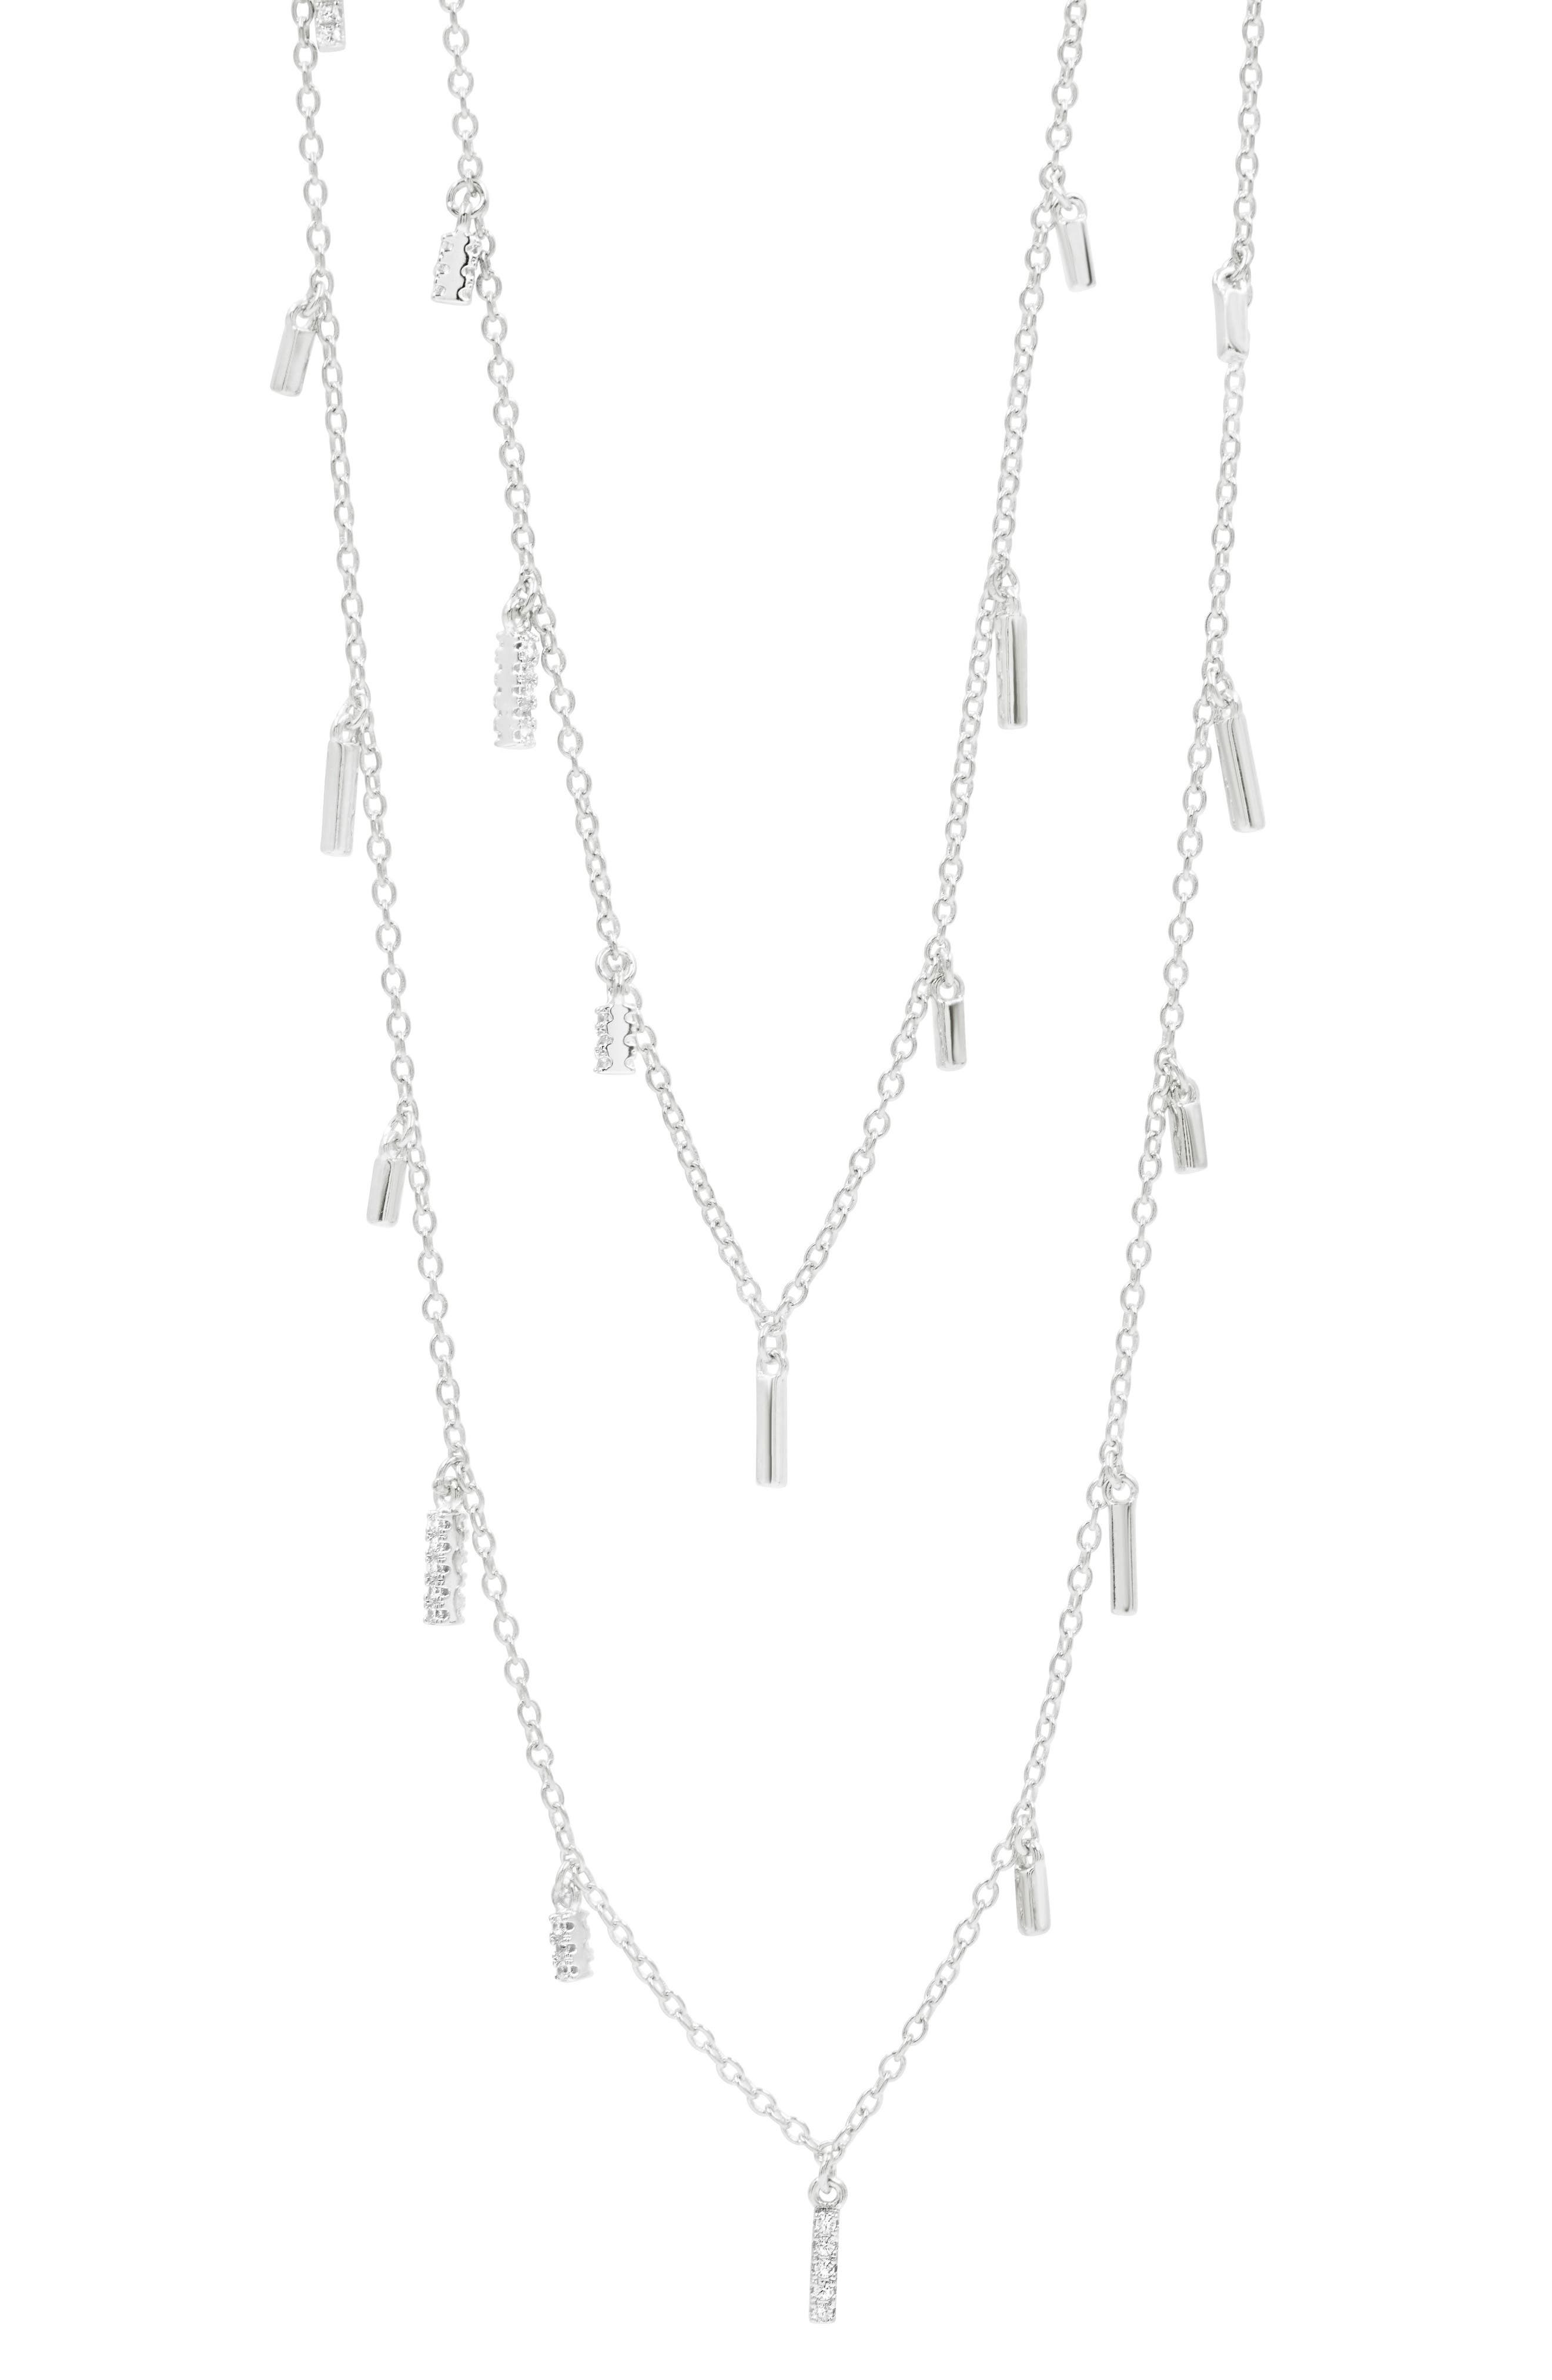 Radiance Multistrand Necklace,                             Main thumbnail 1, color,                             SILVER